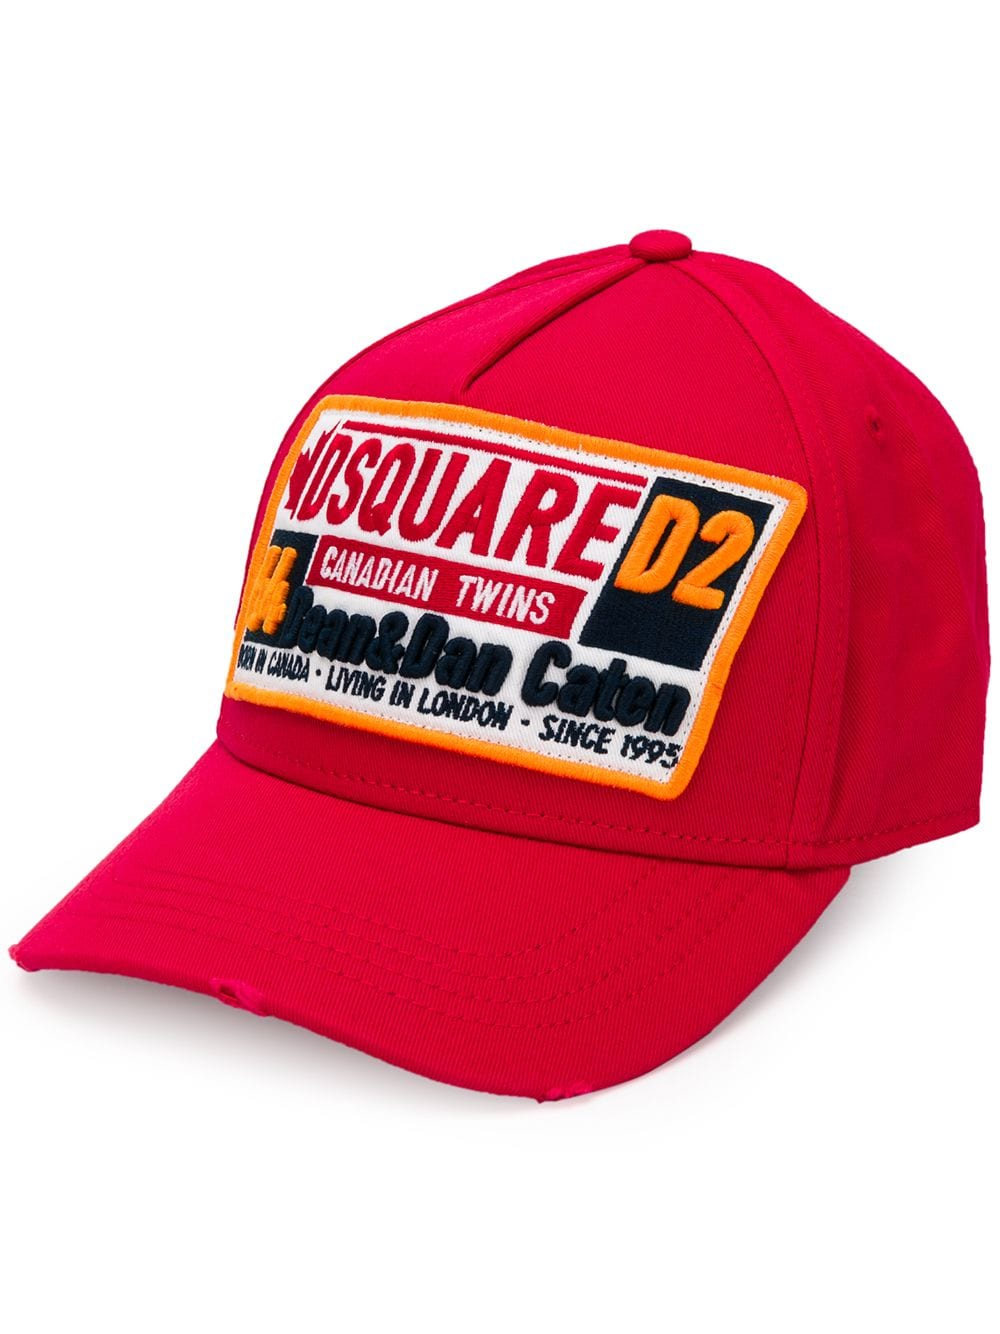 32aee0884dc dsquared2-embroidered-patch-baseball-cap-farfetch-com-photo.jpg?1548299549